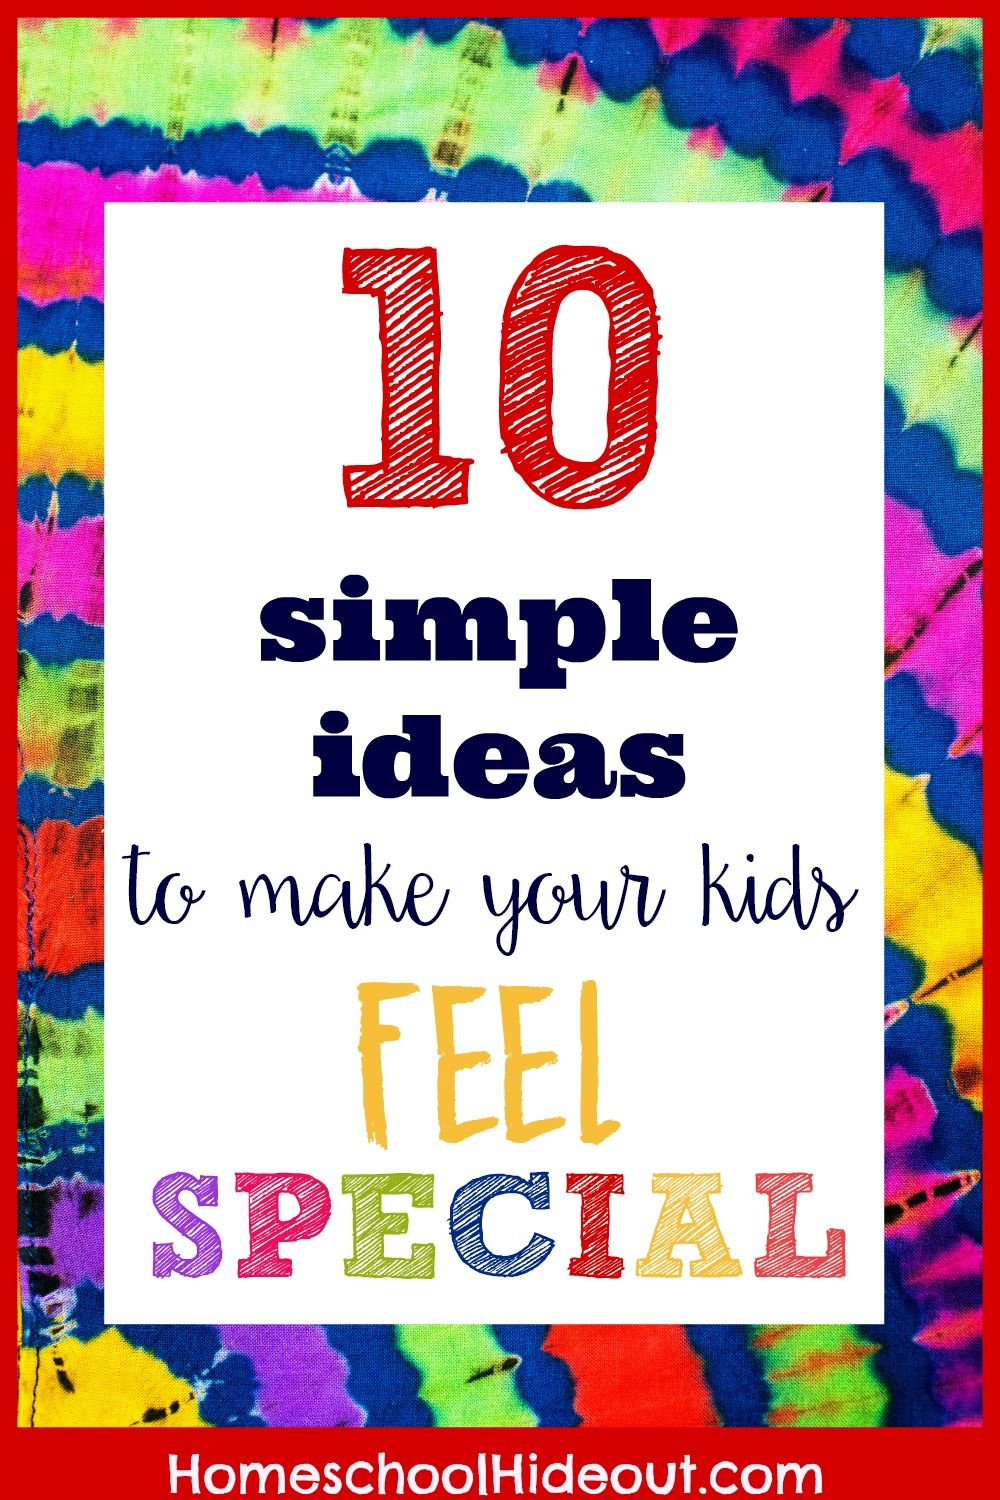 Genius ideas on how to make your kids feel special! I love #4. Gonna go do it right now!